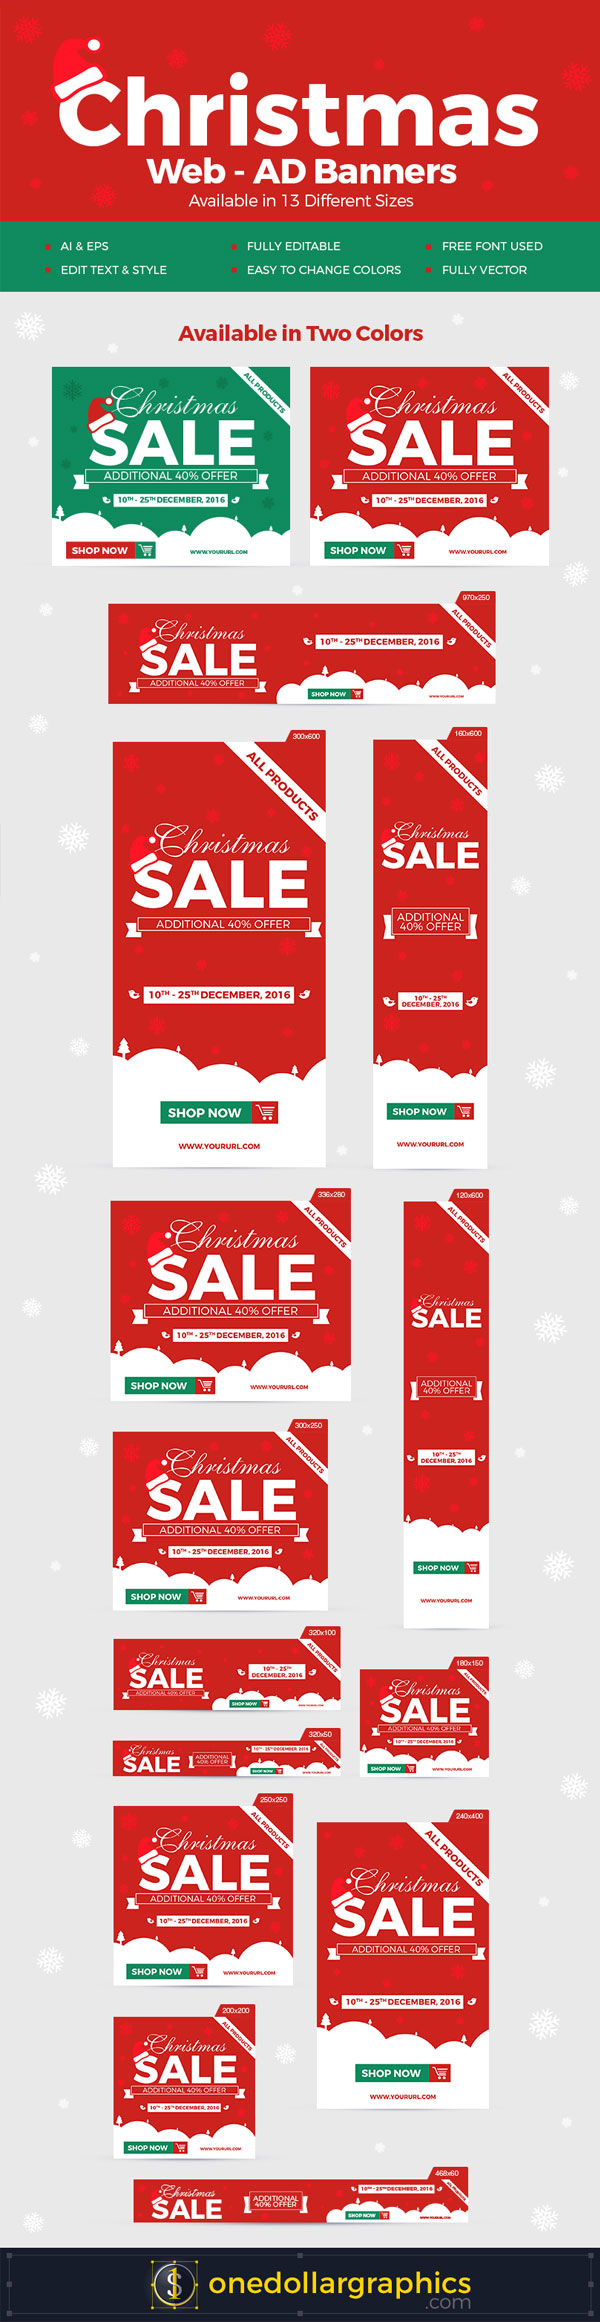 christmas graphic resources templates for designers  christmas web ad banners in vector ai